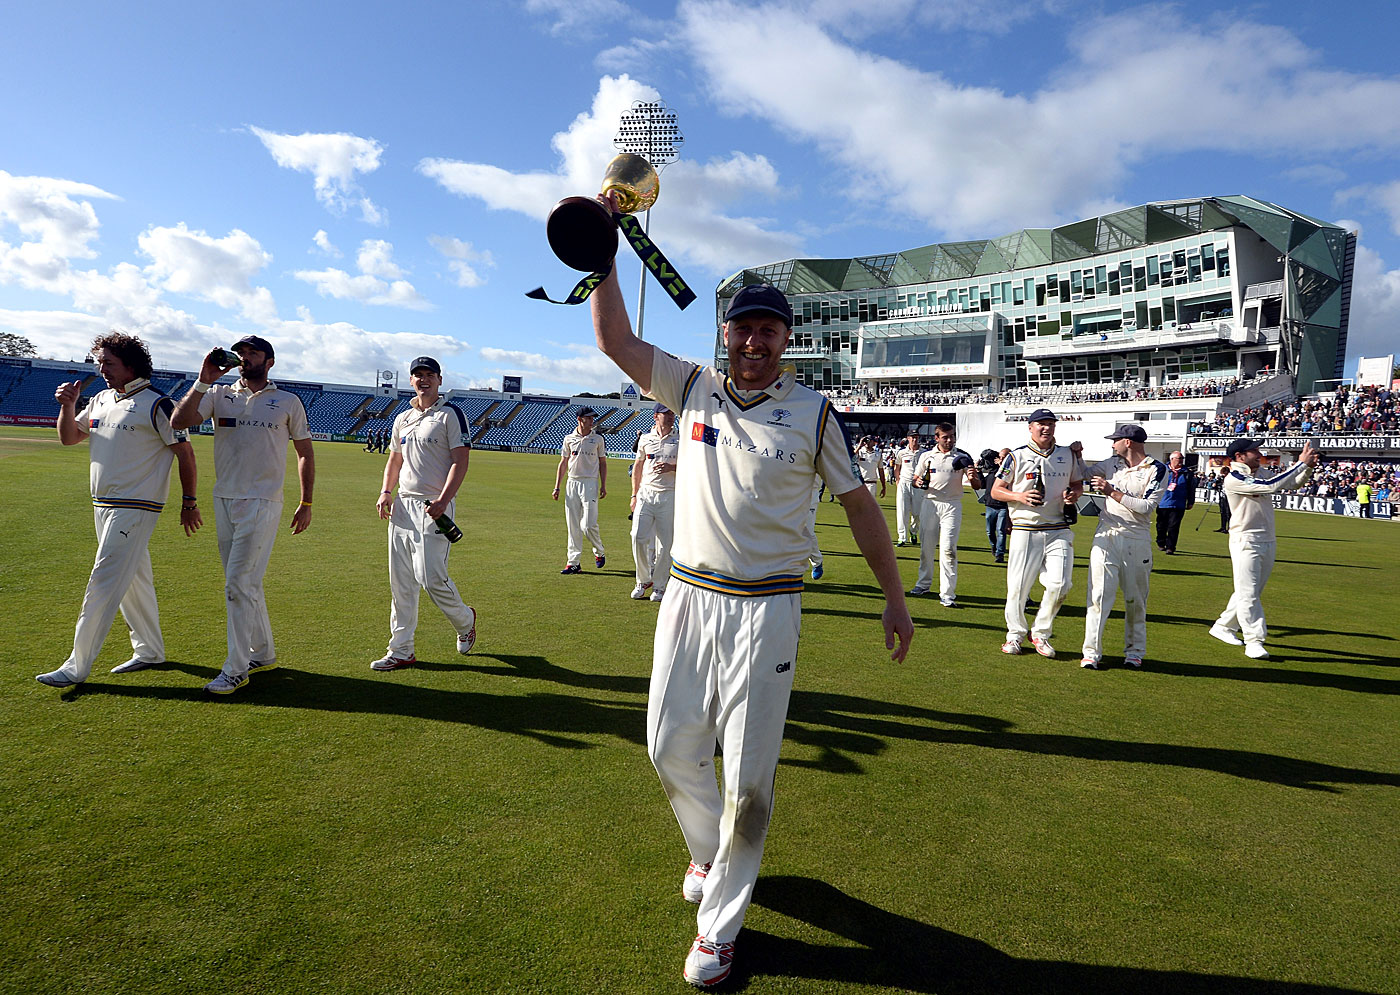 It felt likes old times again after Yorkshire claimed back-to-back Championship titles in 2014 and 2015